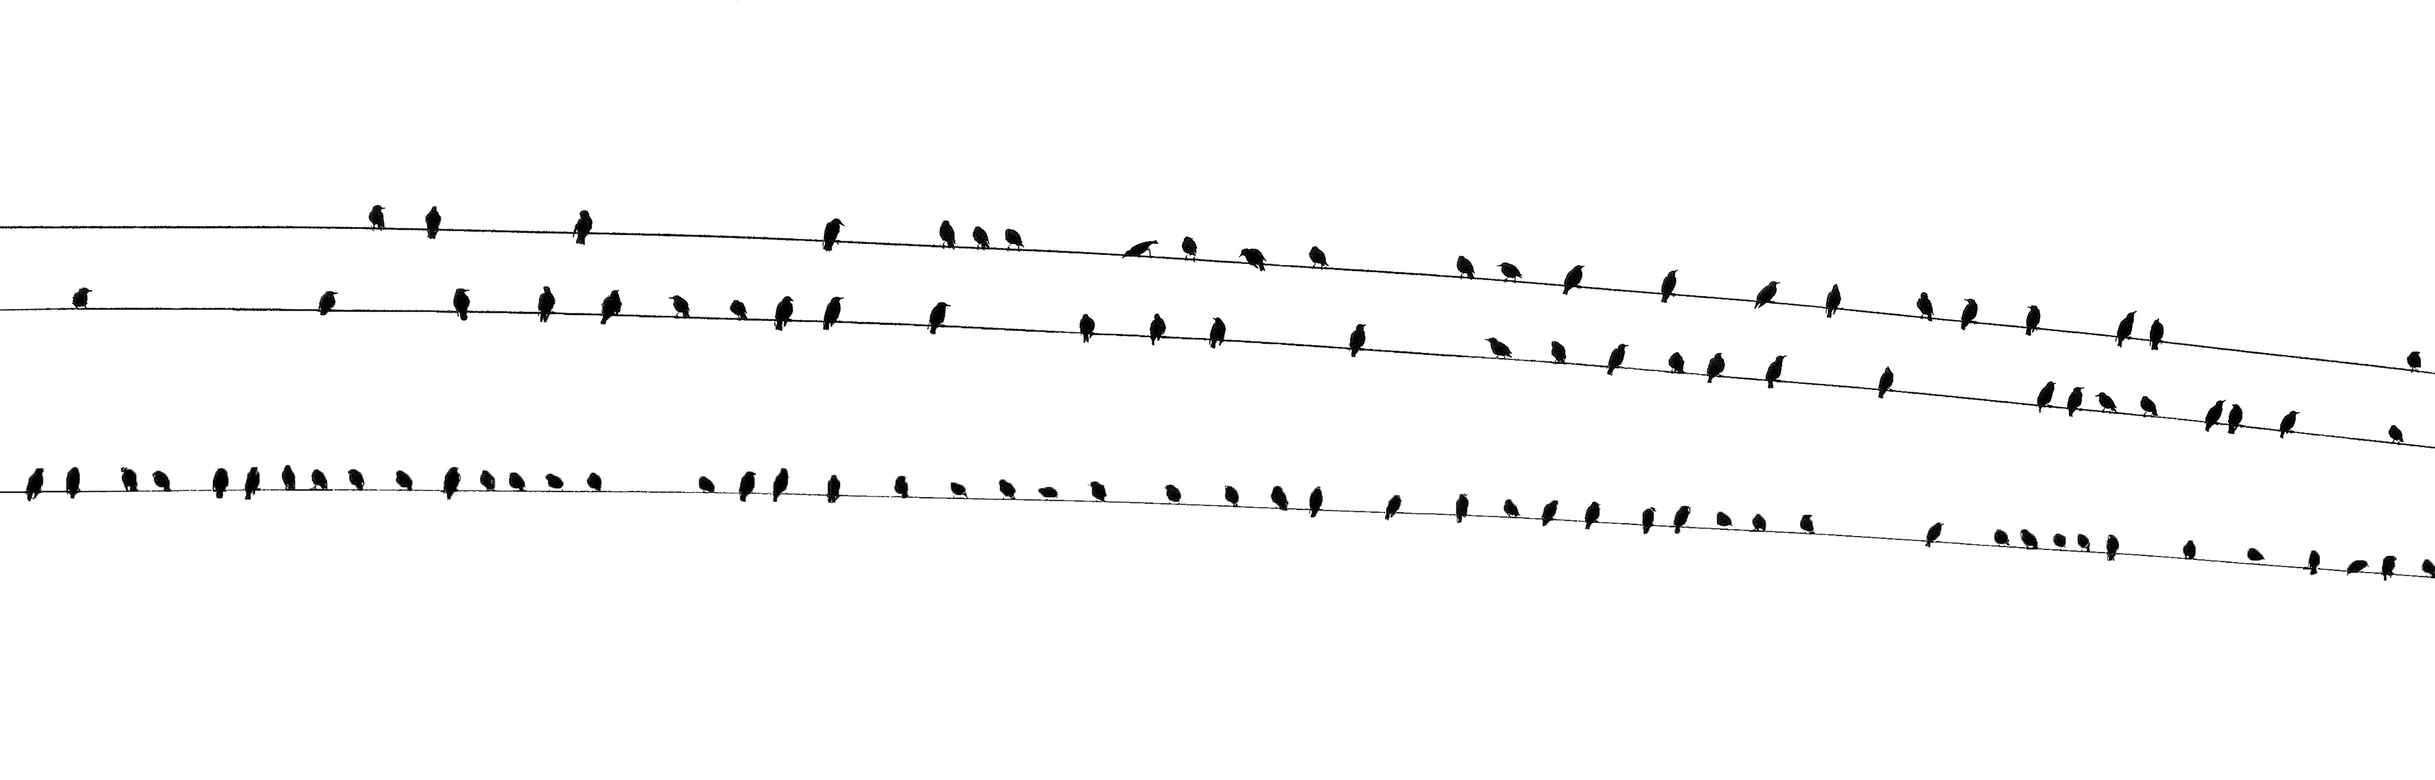 Wide image black birds sitting on wires against white background - panorama, high contrast, background.